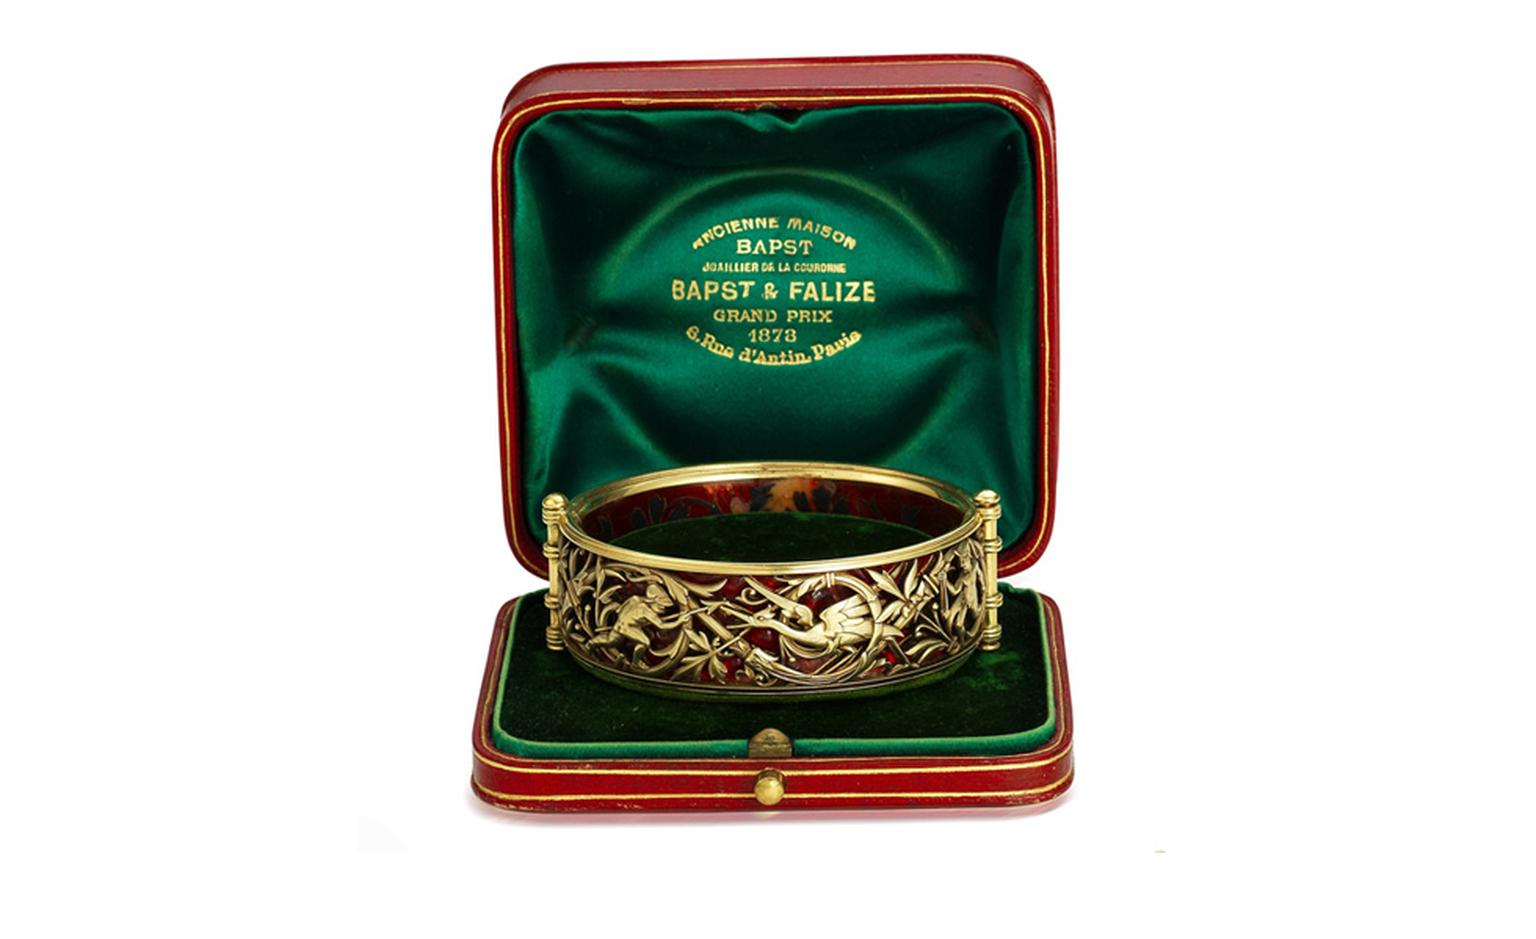 Lot 27. A gold and enamel bangle, by Bapst & Falize, circa 1885. Estimate £6,000-8,000. SOLD FOR ££8,750.